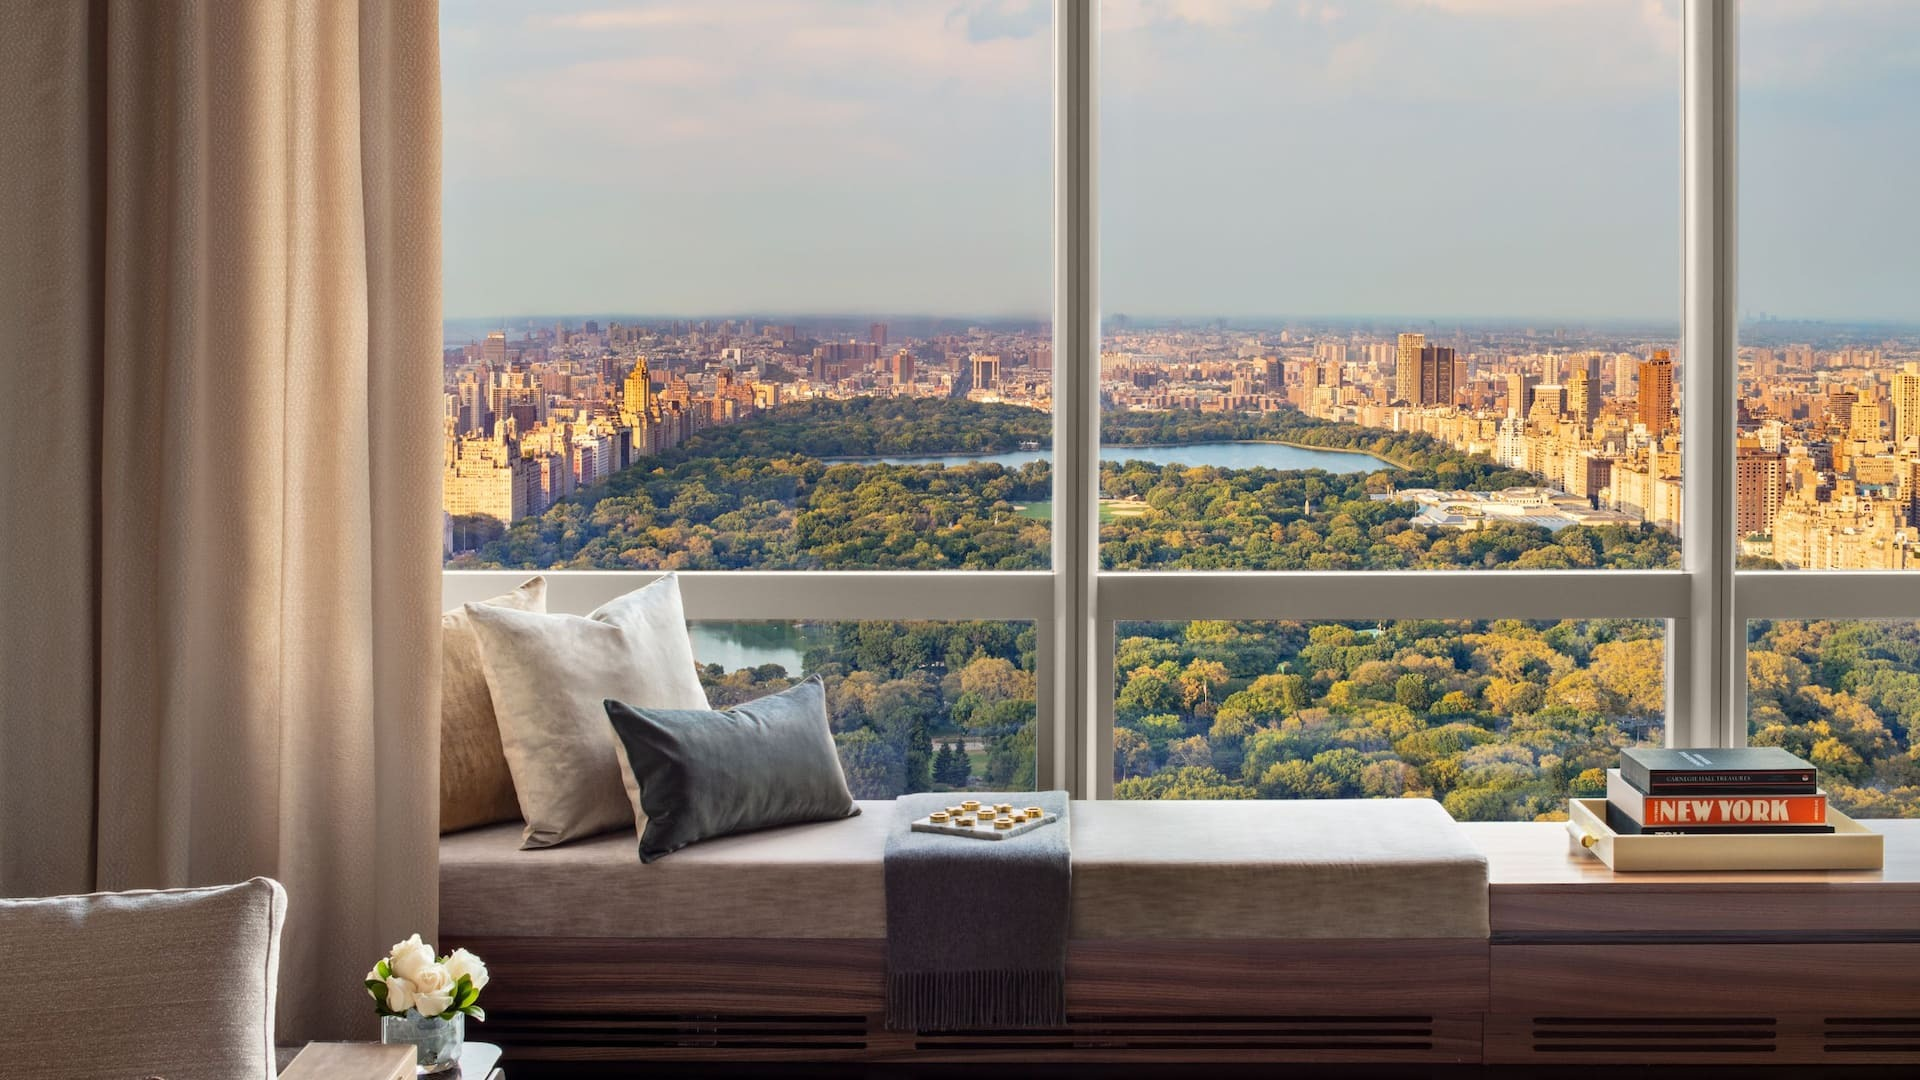 Hotel view over Central Park. Virtual background to use on Zoom, Microsoft Teams, Skype, Google Meet, WebEx or any other compatible app.